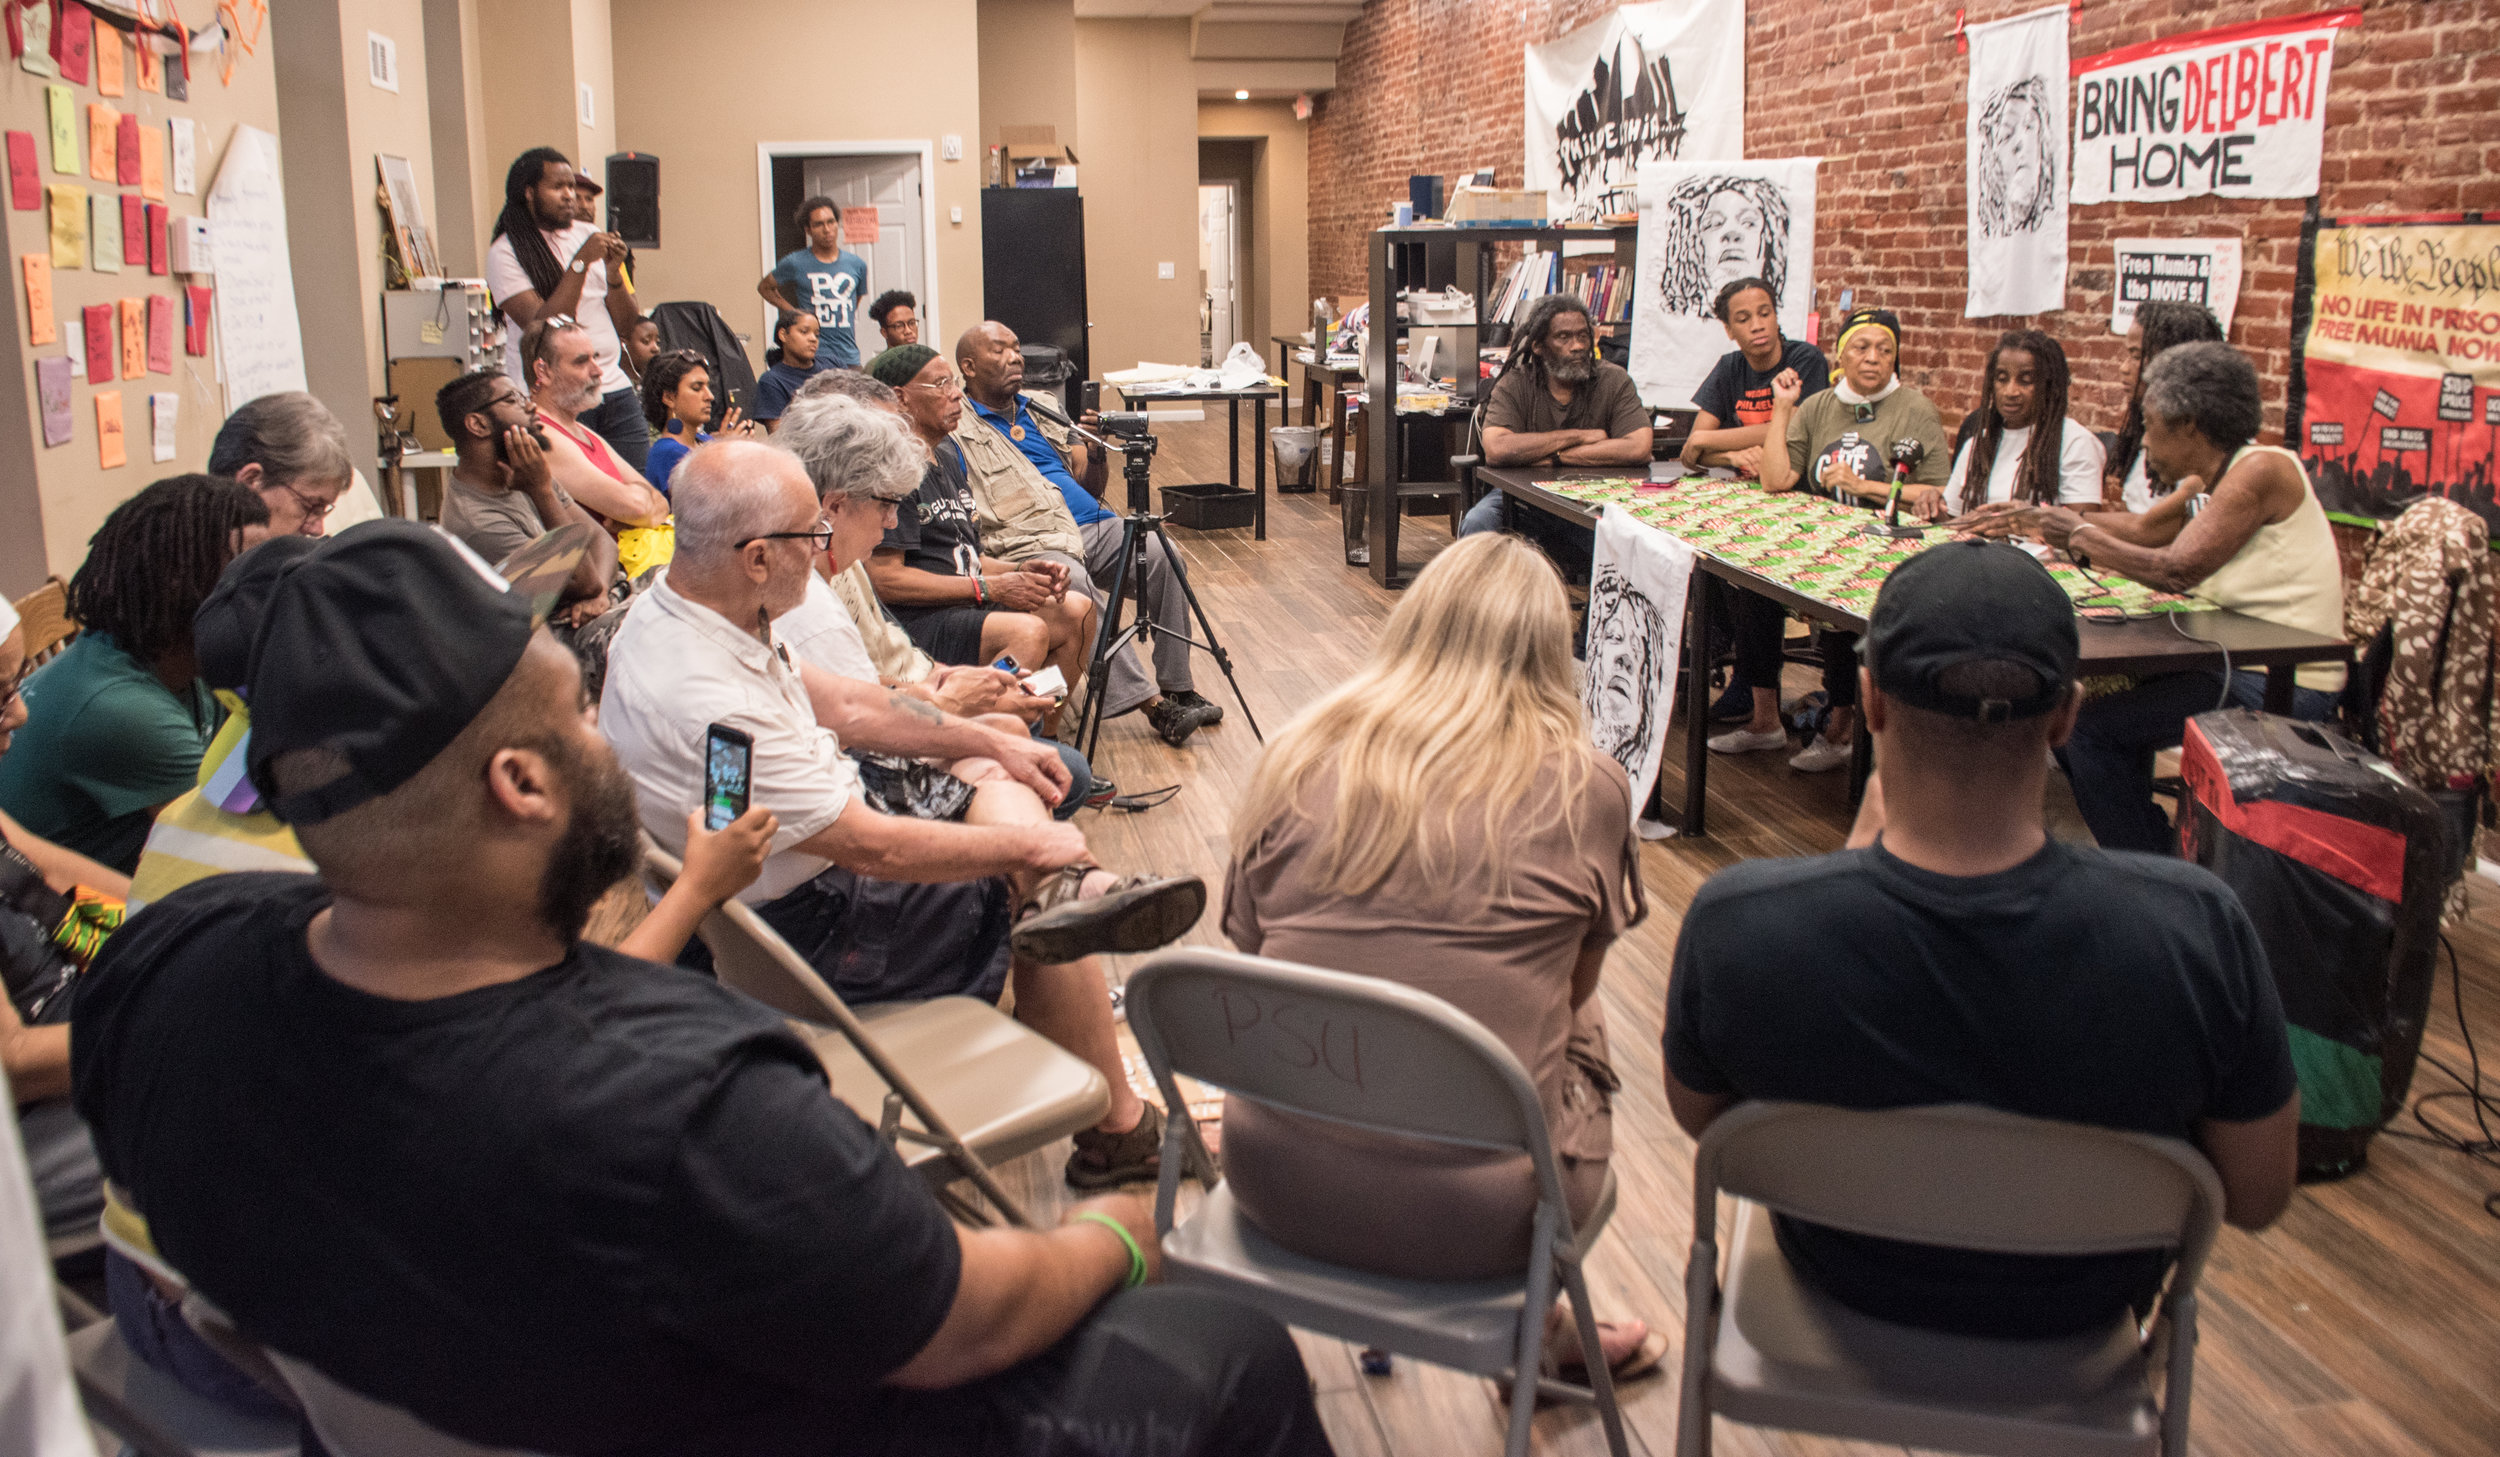 Philadelphia Press Conference Aug 7 warns crowd PA DOC is attempting to kill MOVE 9 unfairly convicted prisoner Delbert Africa. Photo credit: Joe Piette